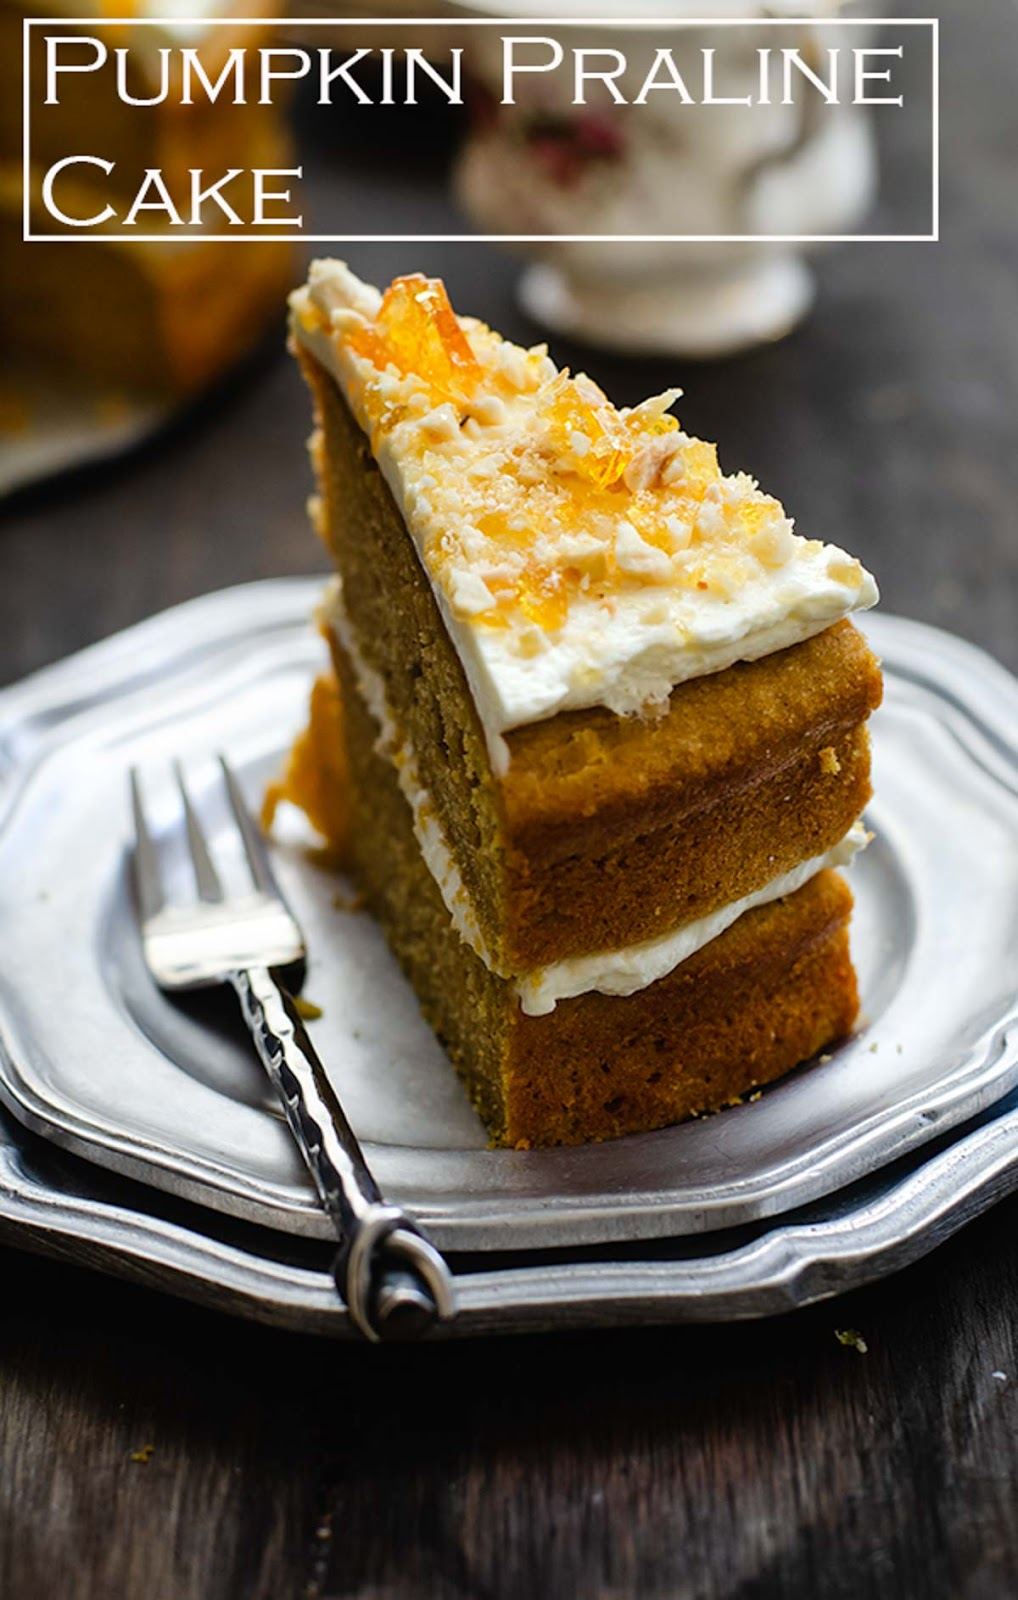 Deliciously sweet. moist roasted pumpkin cake with crunchy almond praline. Roasted pumpkin puree adds smokey roasted sweetness flavour to the Pumpkin Praline Cake.